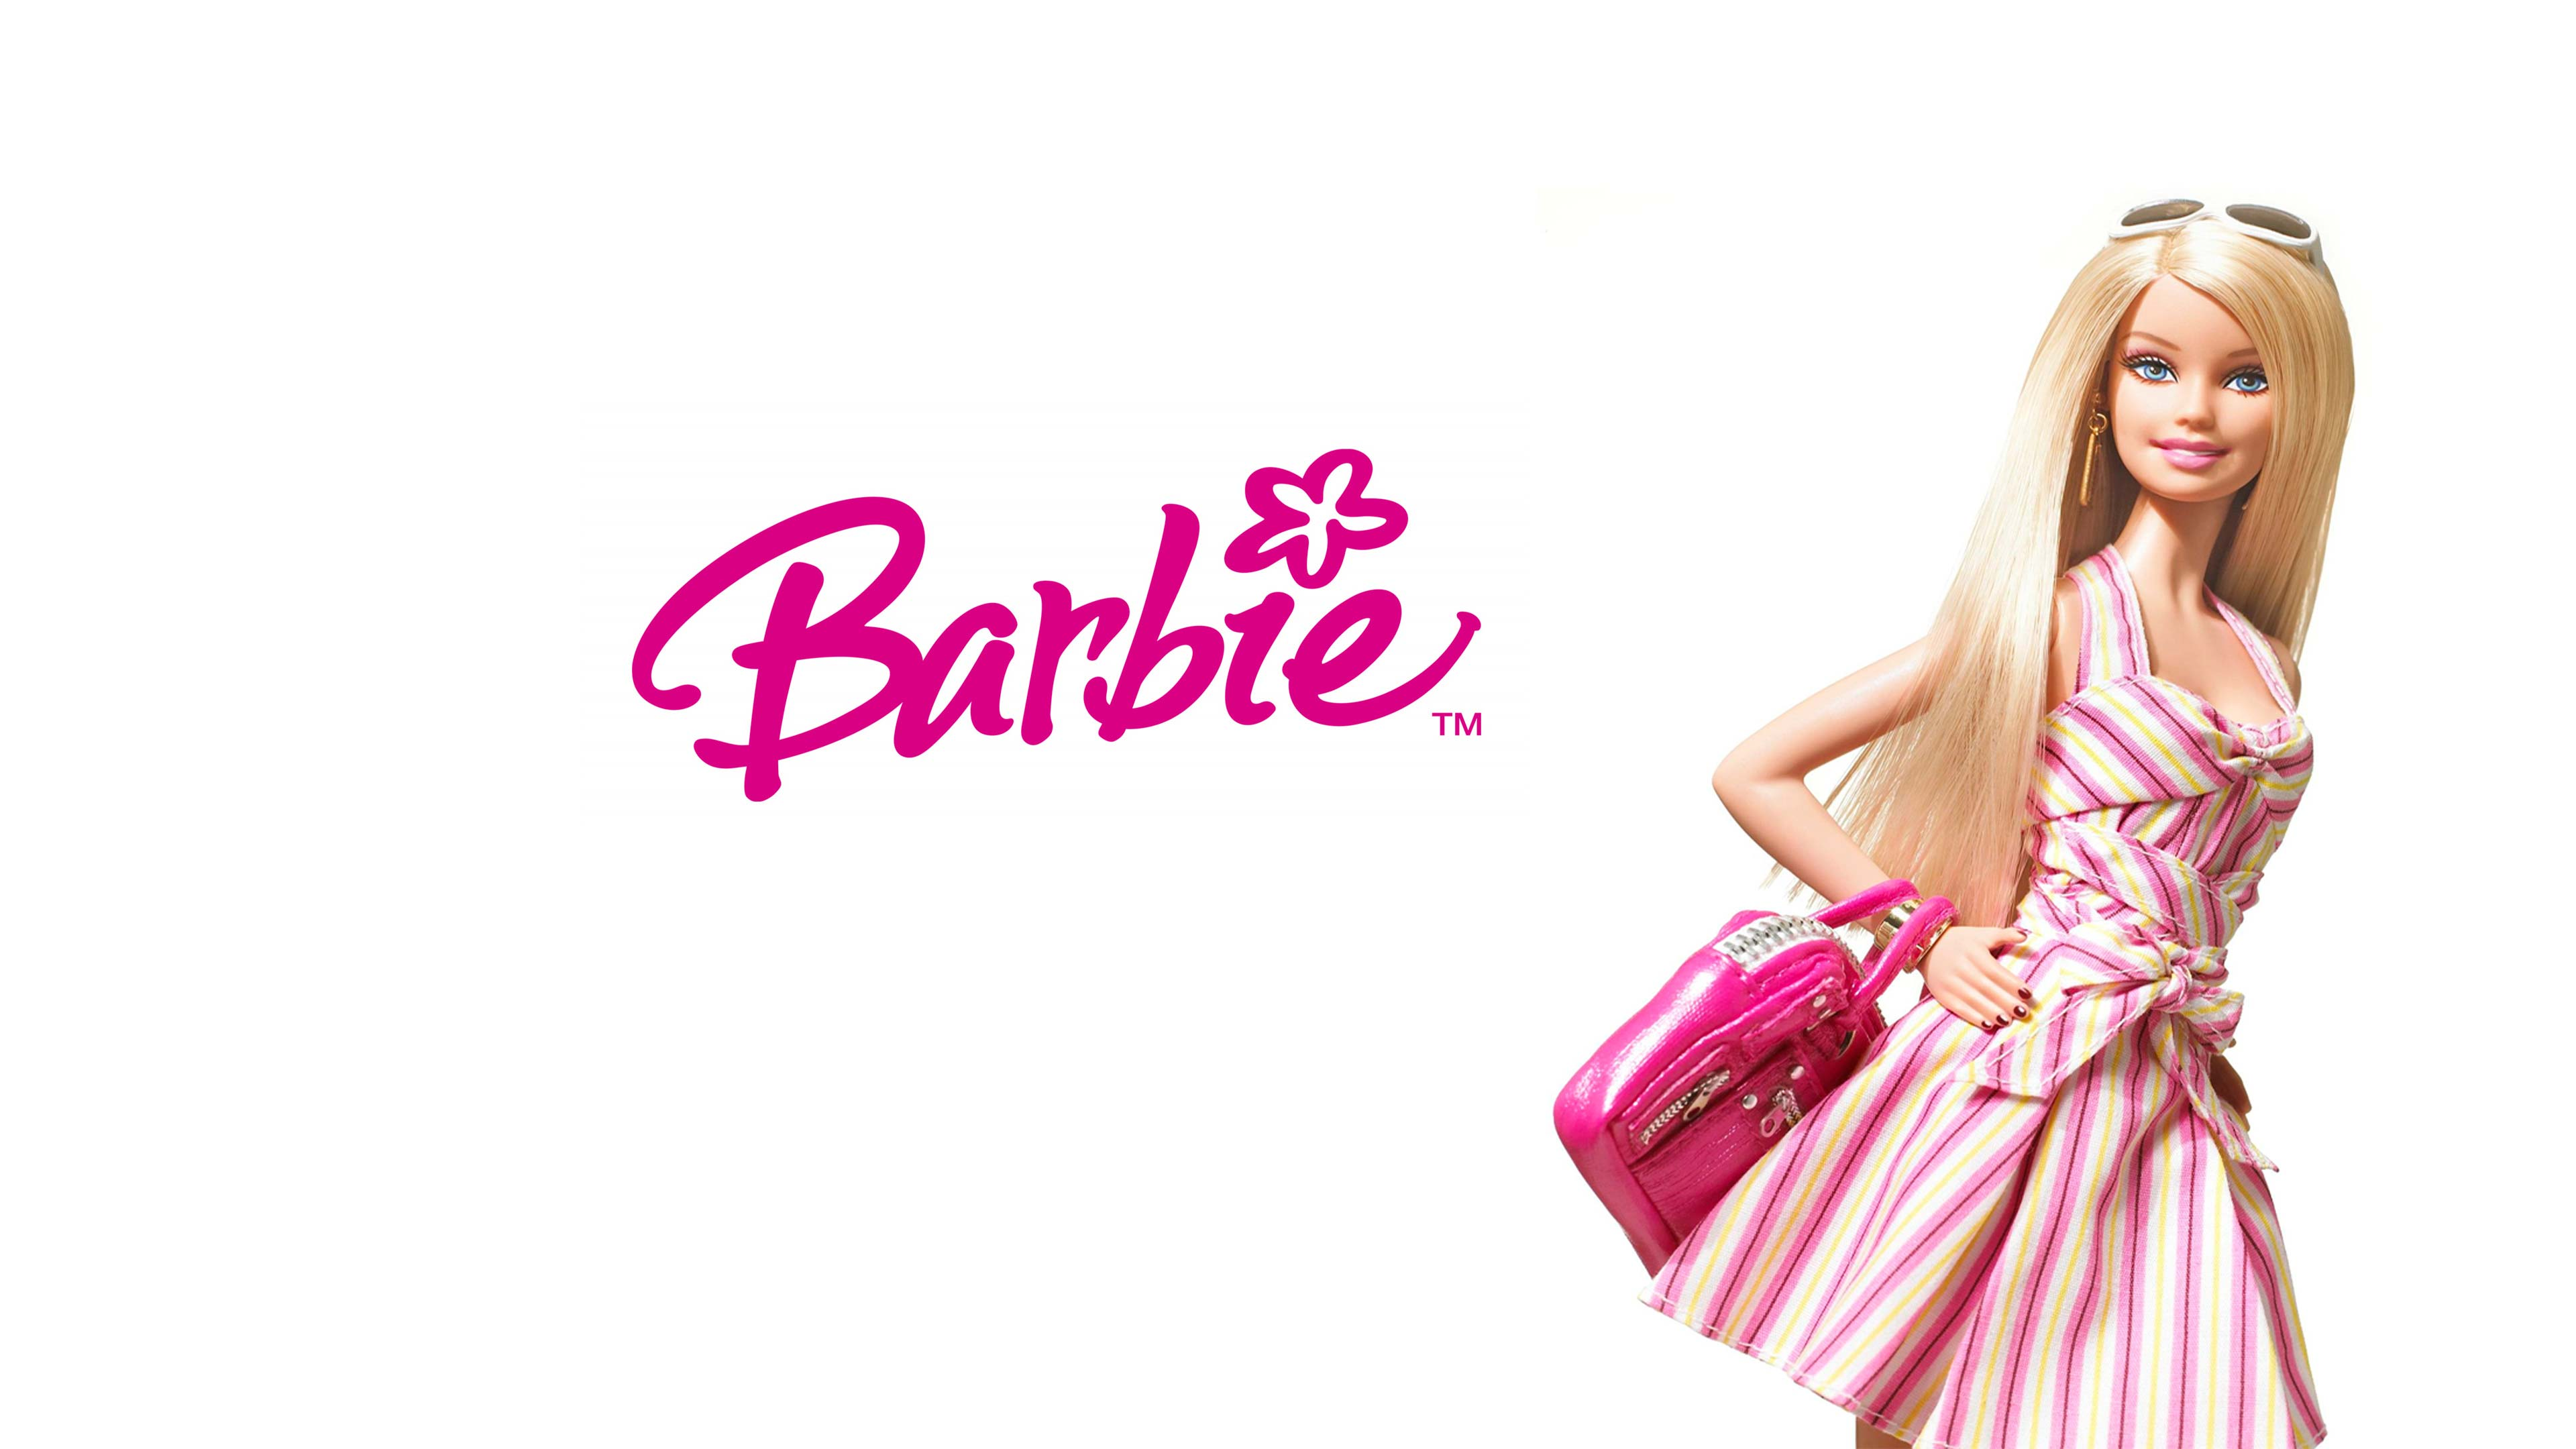 Barbie Doll Wallpaper HD Background 3840x2160